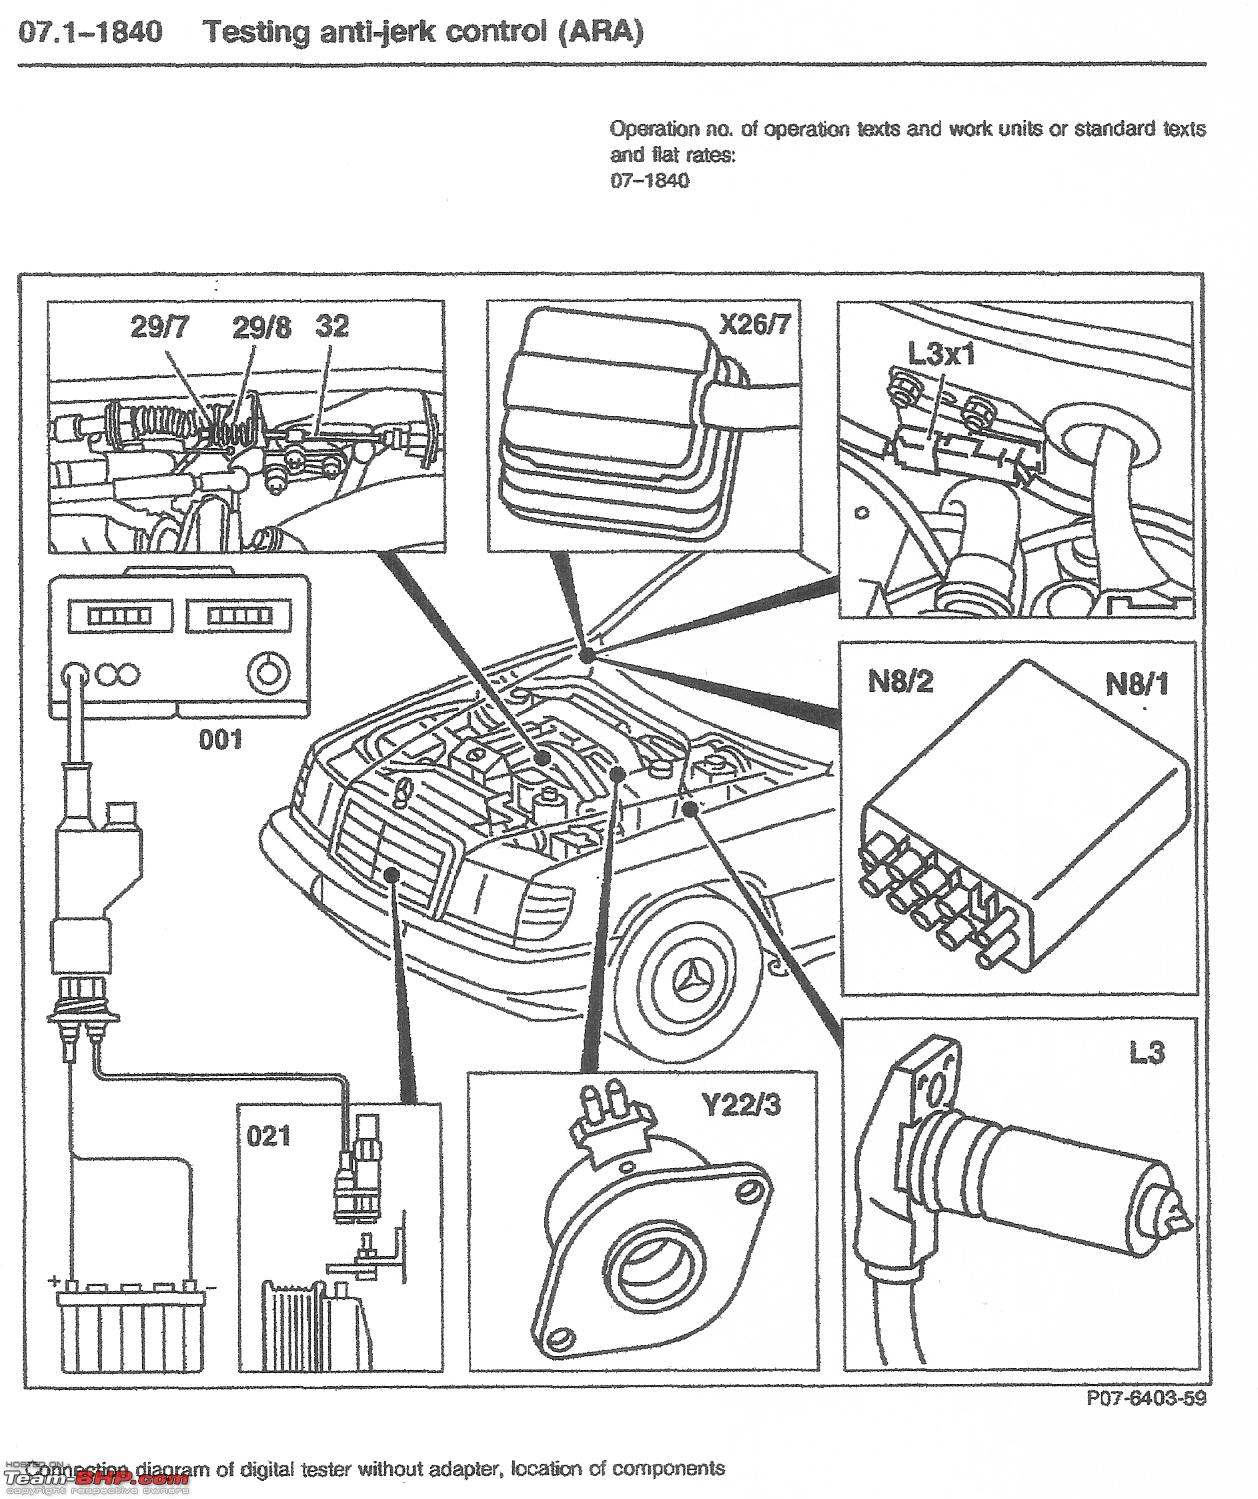 1242235d1400517927 mercedes w124 e class support group antijerk control ara w124 climate control wiring diagram circuit and schematics diagram mercedes w124 wiring diagram at bakdesigns.co